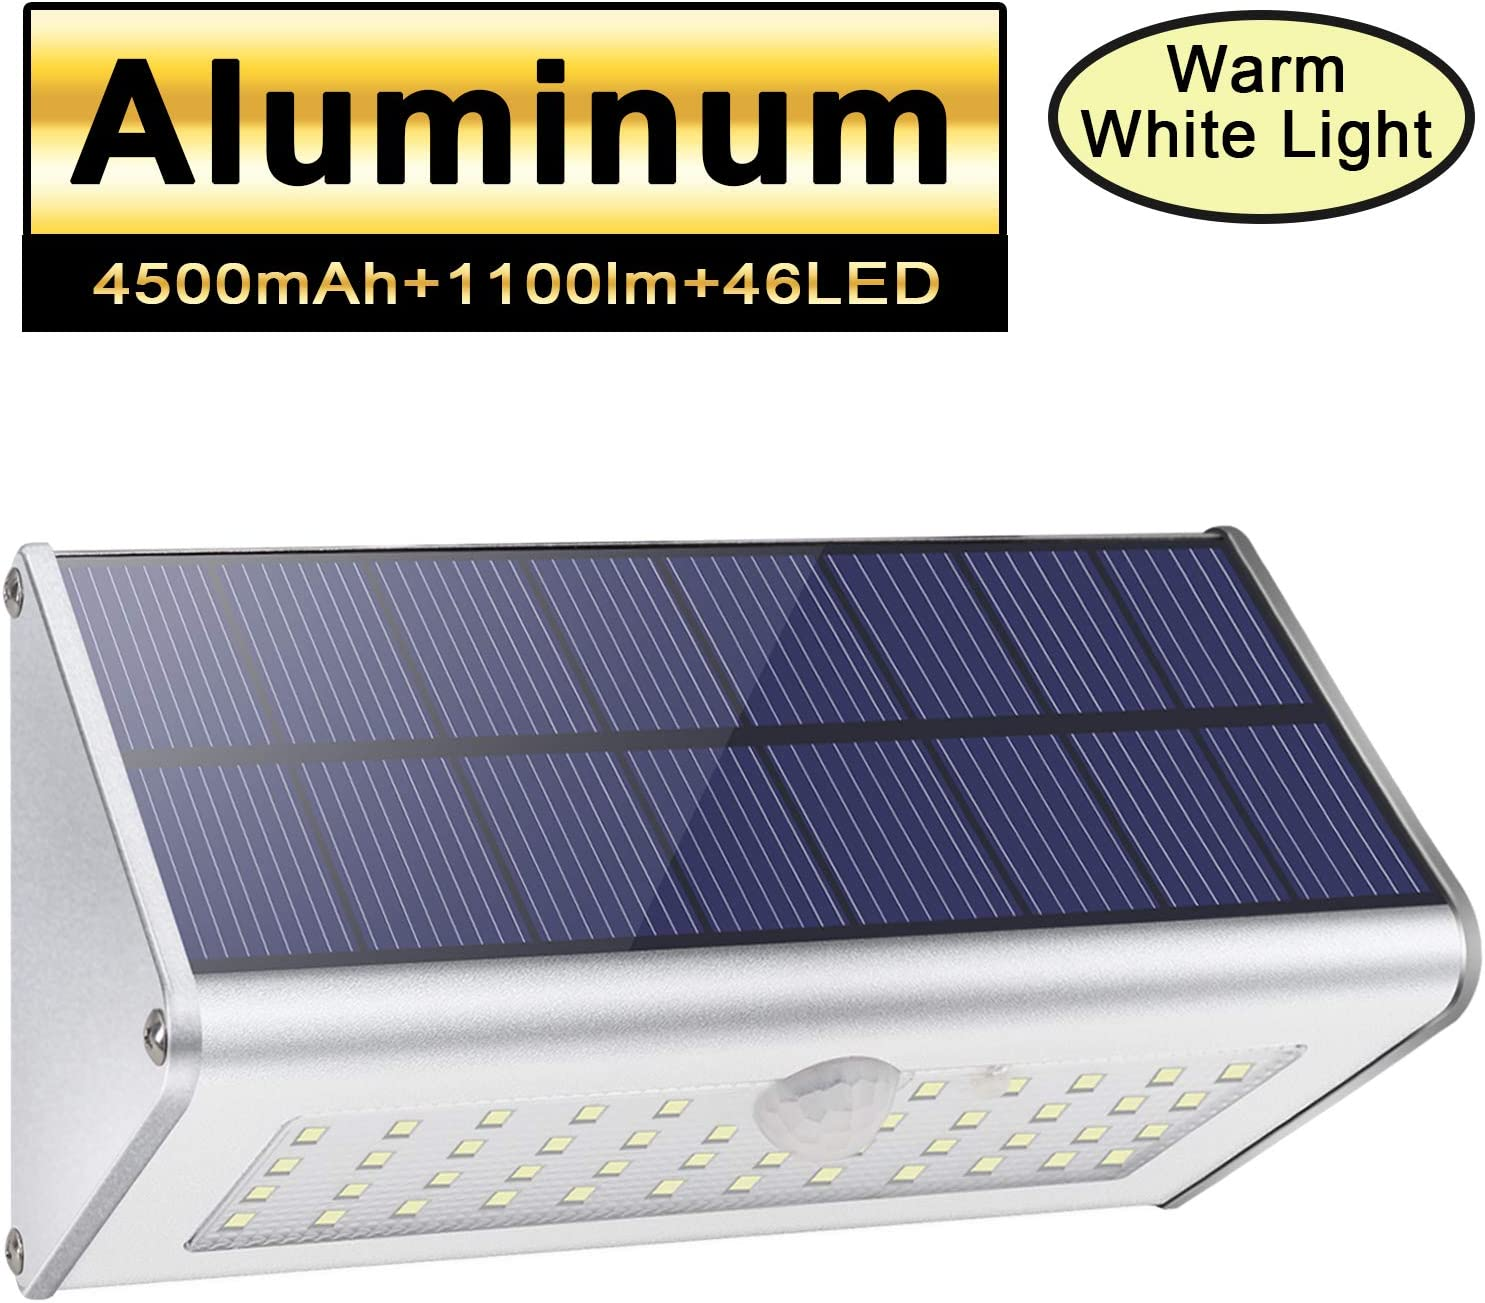 46LED Solar Lights Outdoor 1100lm 4500mAh Aluminum Alloy Housing IP65 Waterproof Motion Sensor Solar Security Lights for Front Door, Yard, Garage, Garden, Deck,Fence-Warm White Light